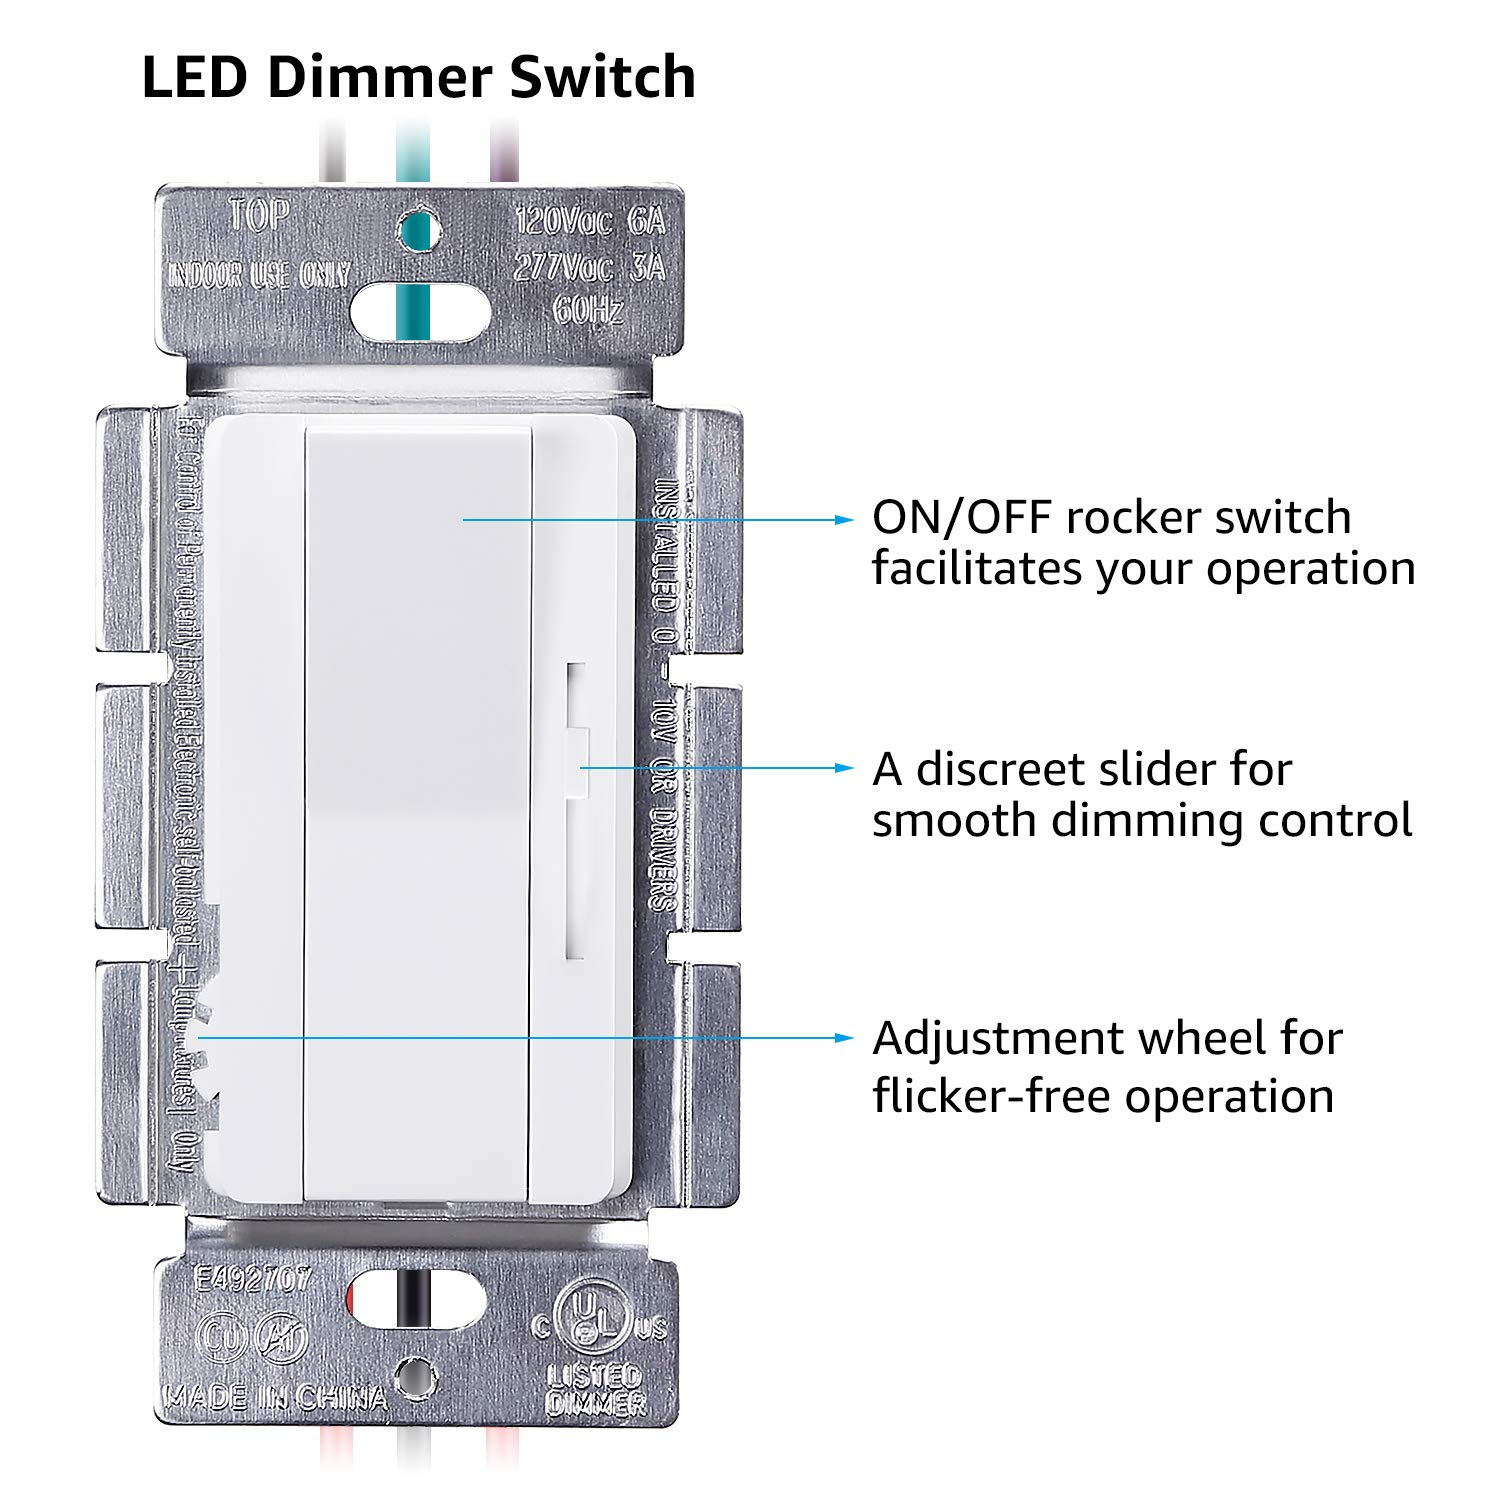 Torchstar 3 Way Single Pole Dimmer Switch With Slider Ul Listed 0 Led Rocker Wiring Diagram 10 10v Wall On Off For Controlling Lights